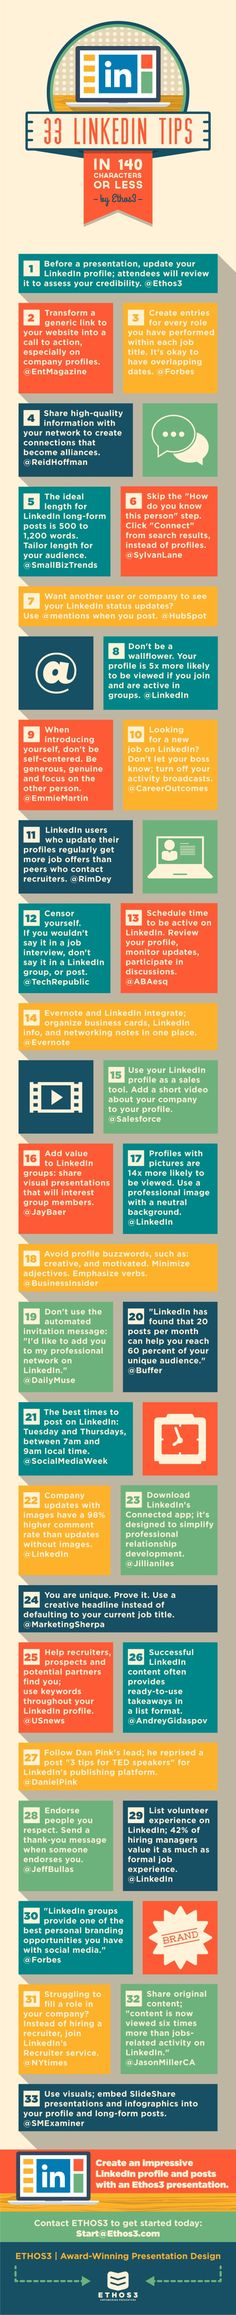 Love curated advice when it's bite size! 33 LinkedIn Tips, in 140 characters or less - #infographic #LinkedIn #socialmediatips #homeofsocial